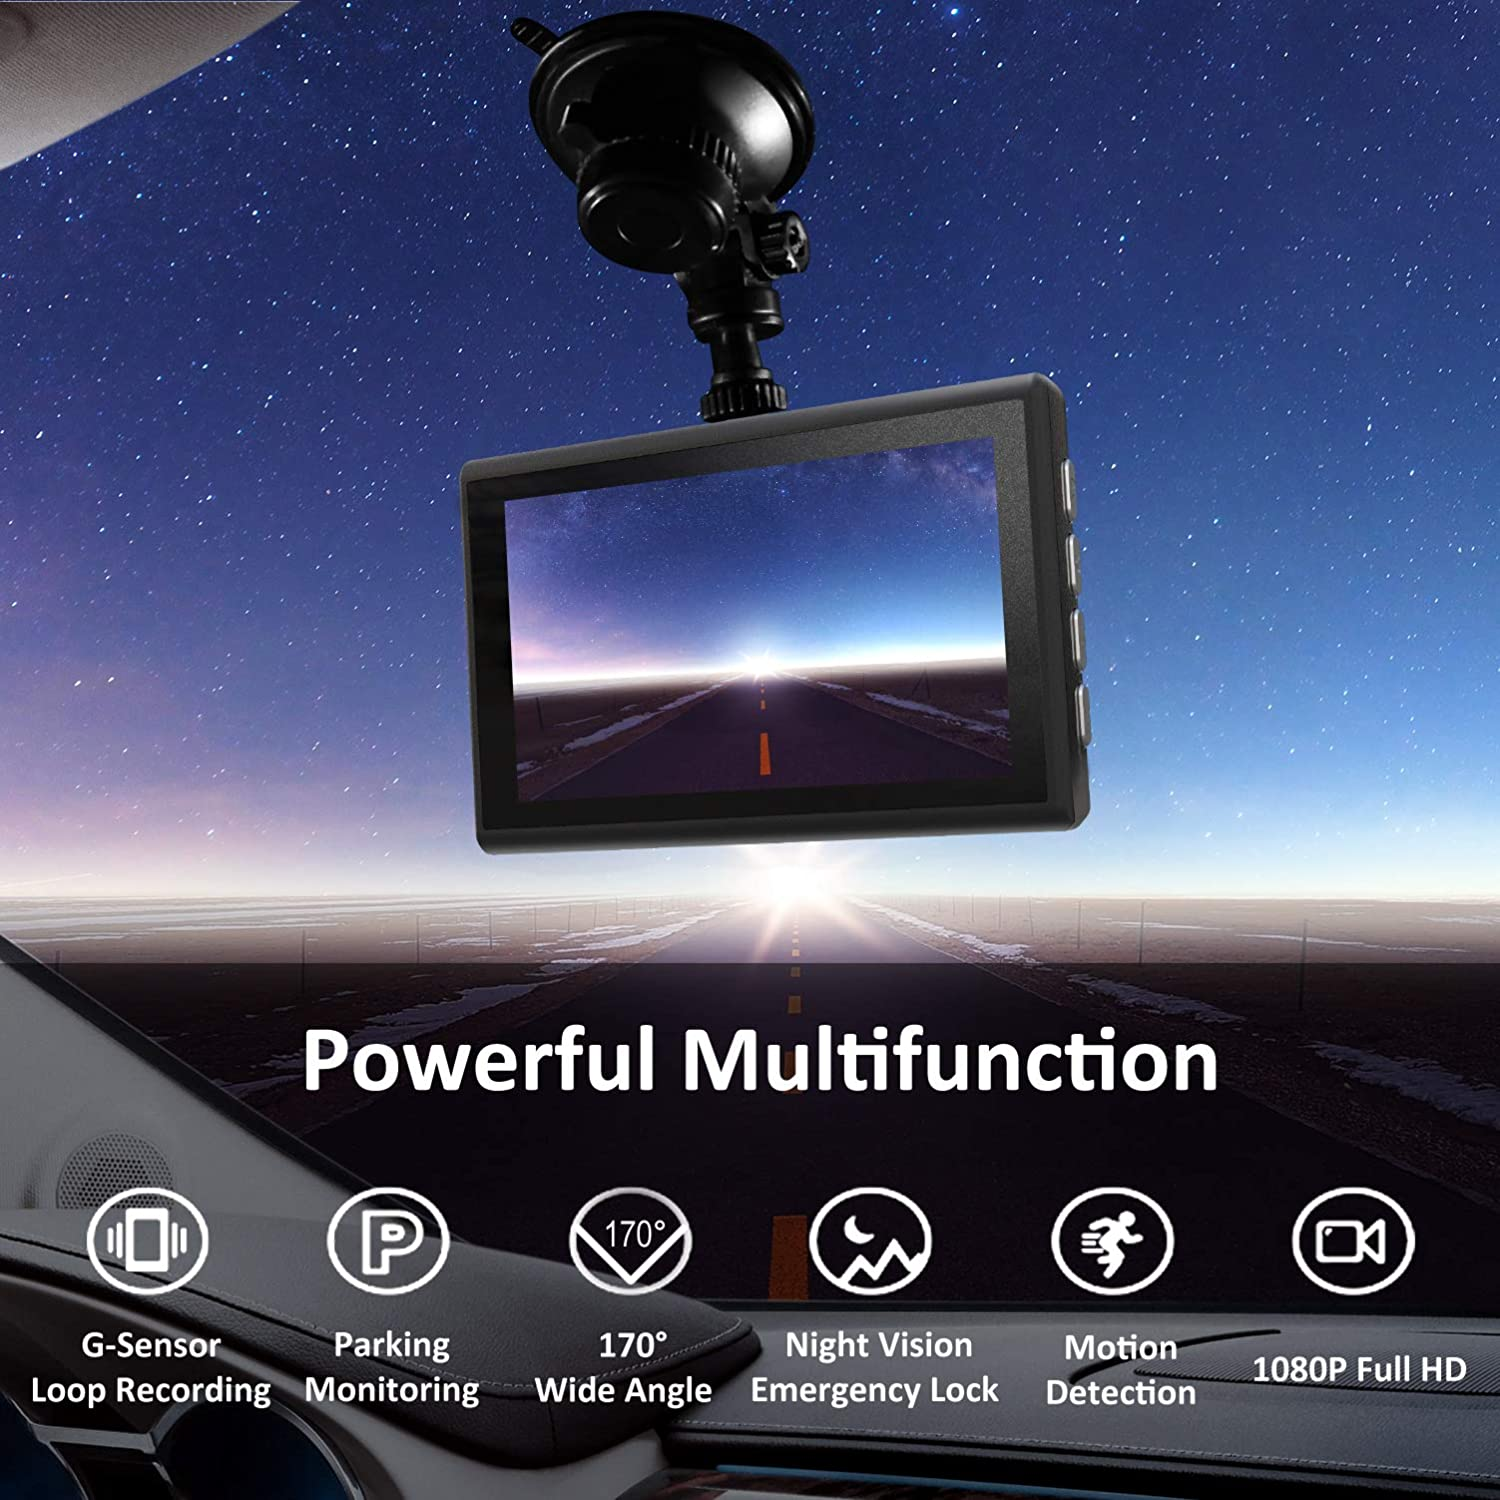 Dash Cam 1080P FHD 3 Inch IPS Screen Metal Shell Dash Camera for Cars,Car DVR Dashboard Recorder Super Night Vision,170/°Wide Angle,WDR,G-Sensor,Loop Recording,Motion Detection,Parking Monitor